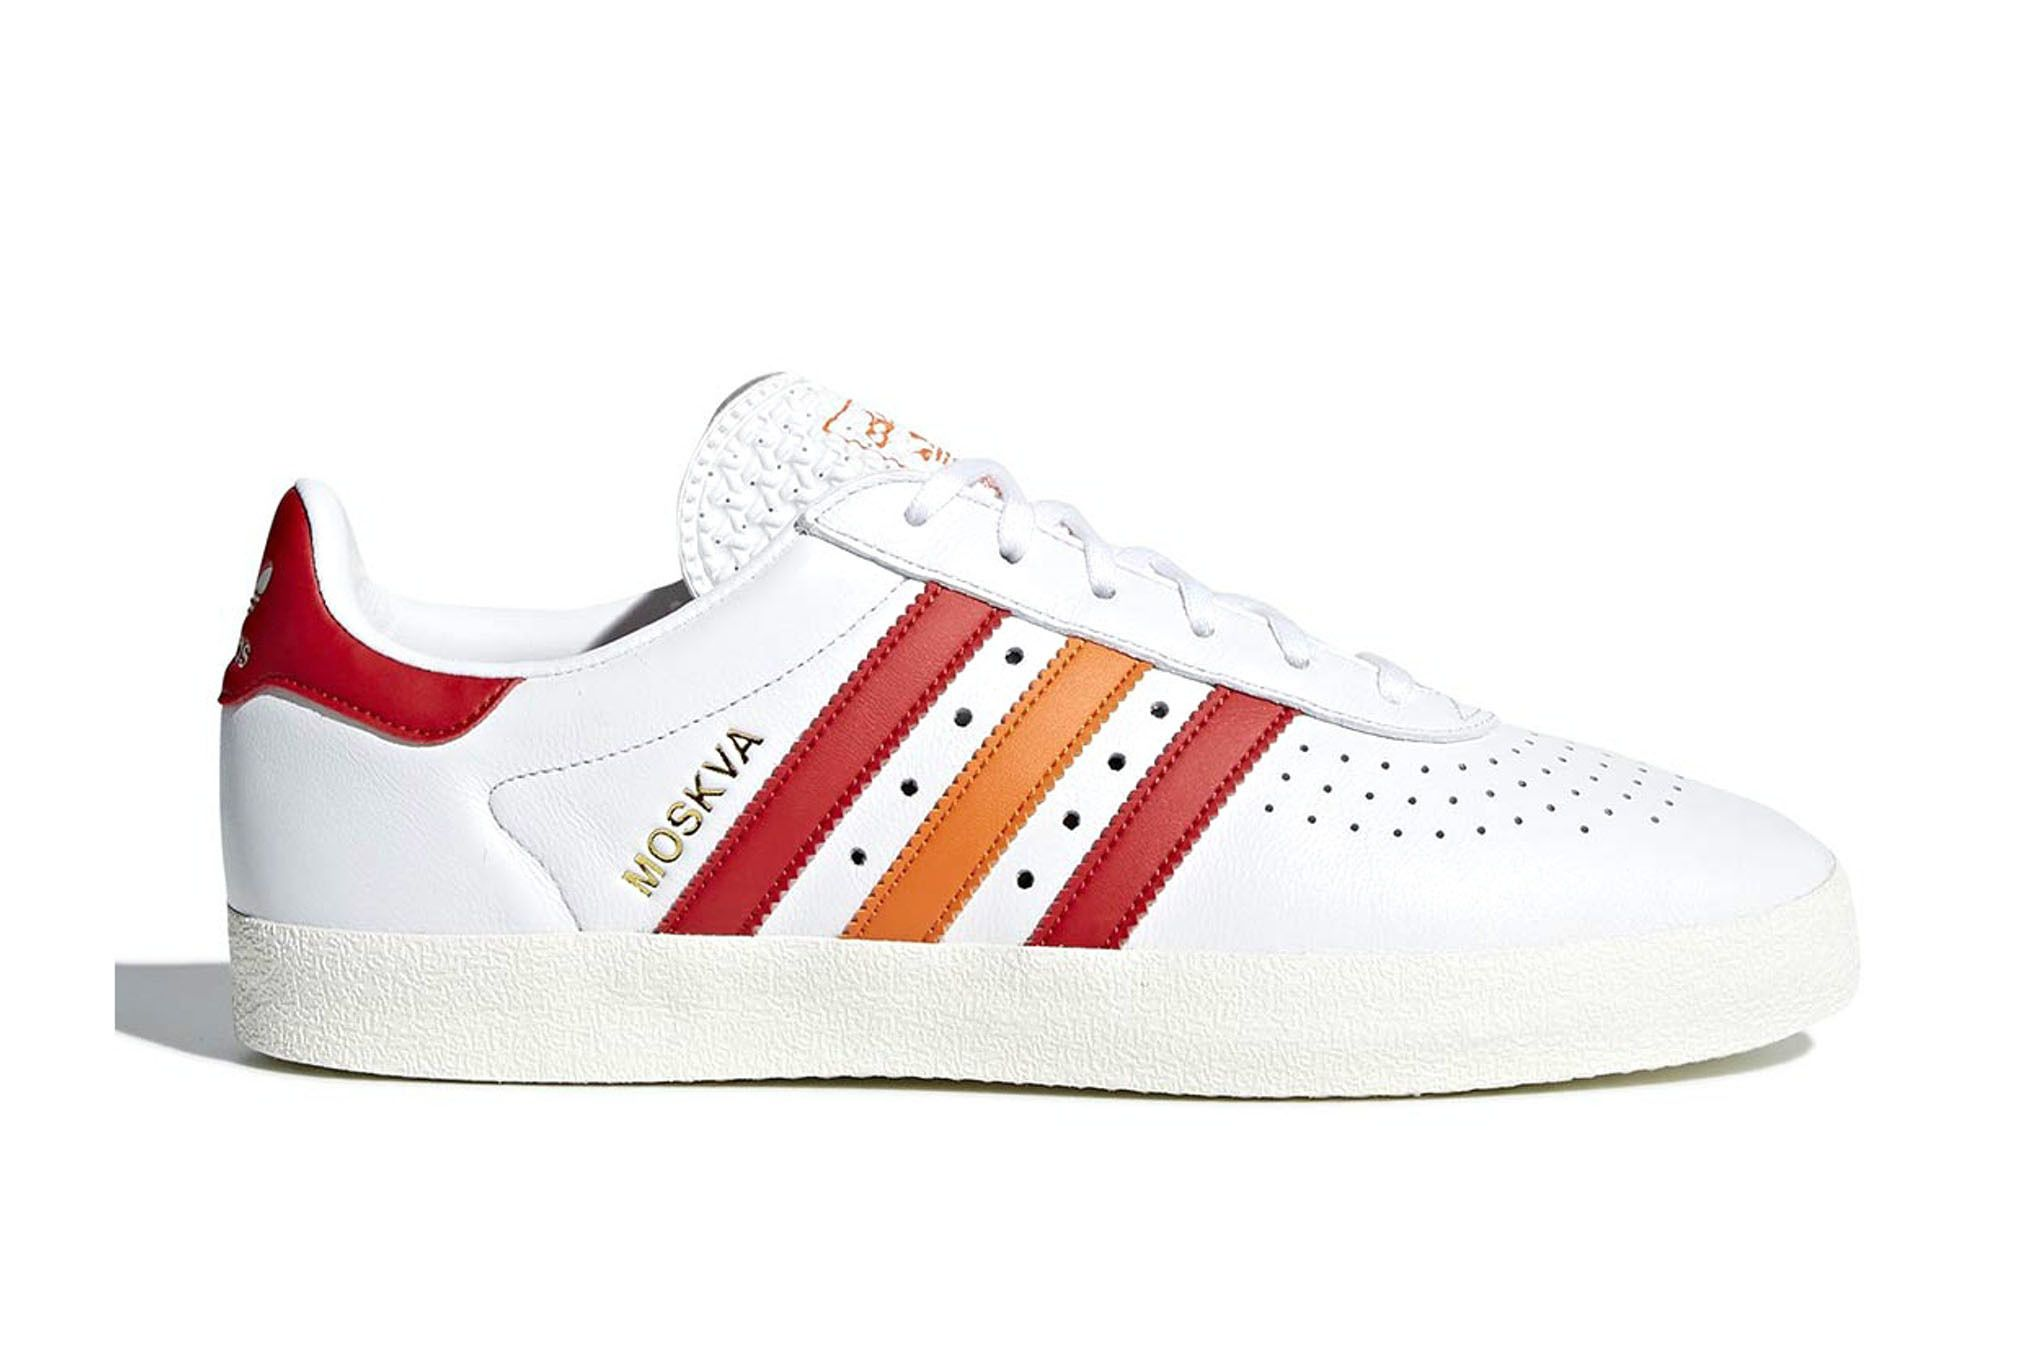 Adidas 350 Moscow Black White Leather Release 4 Sneaker Freaker